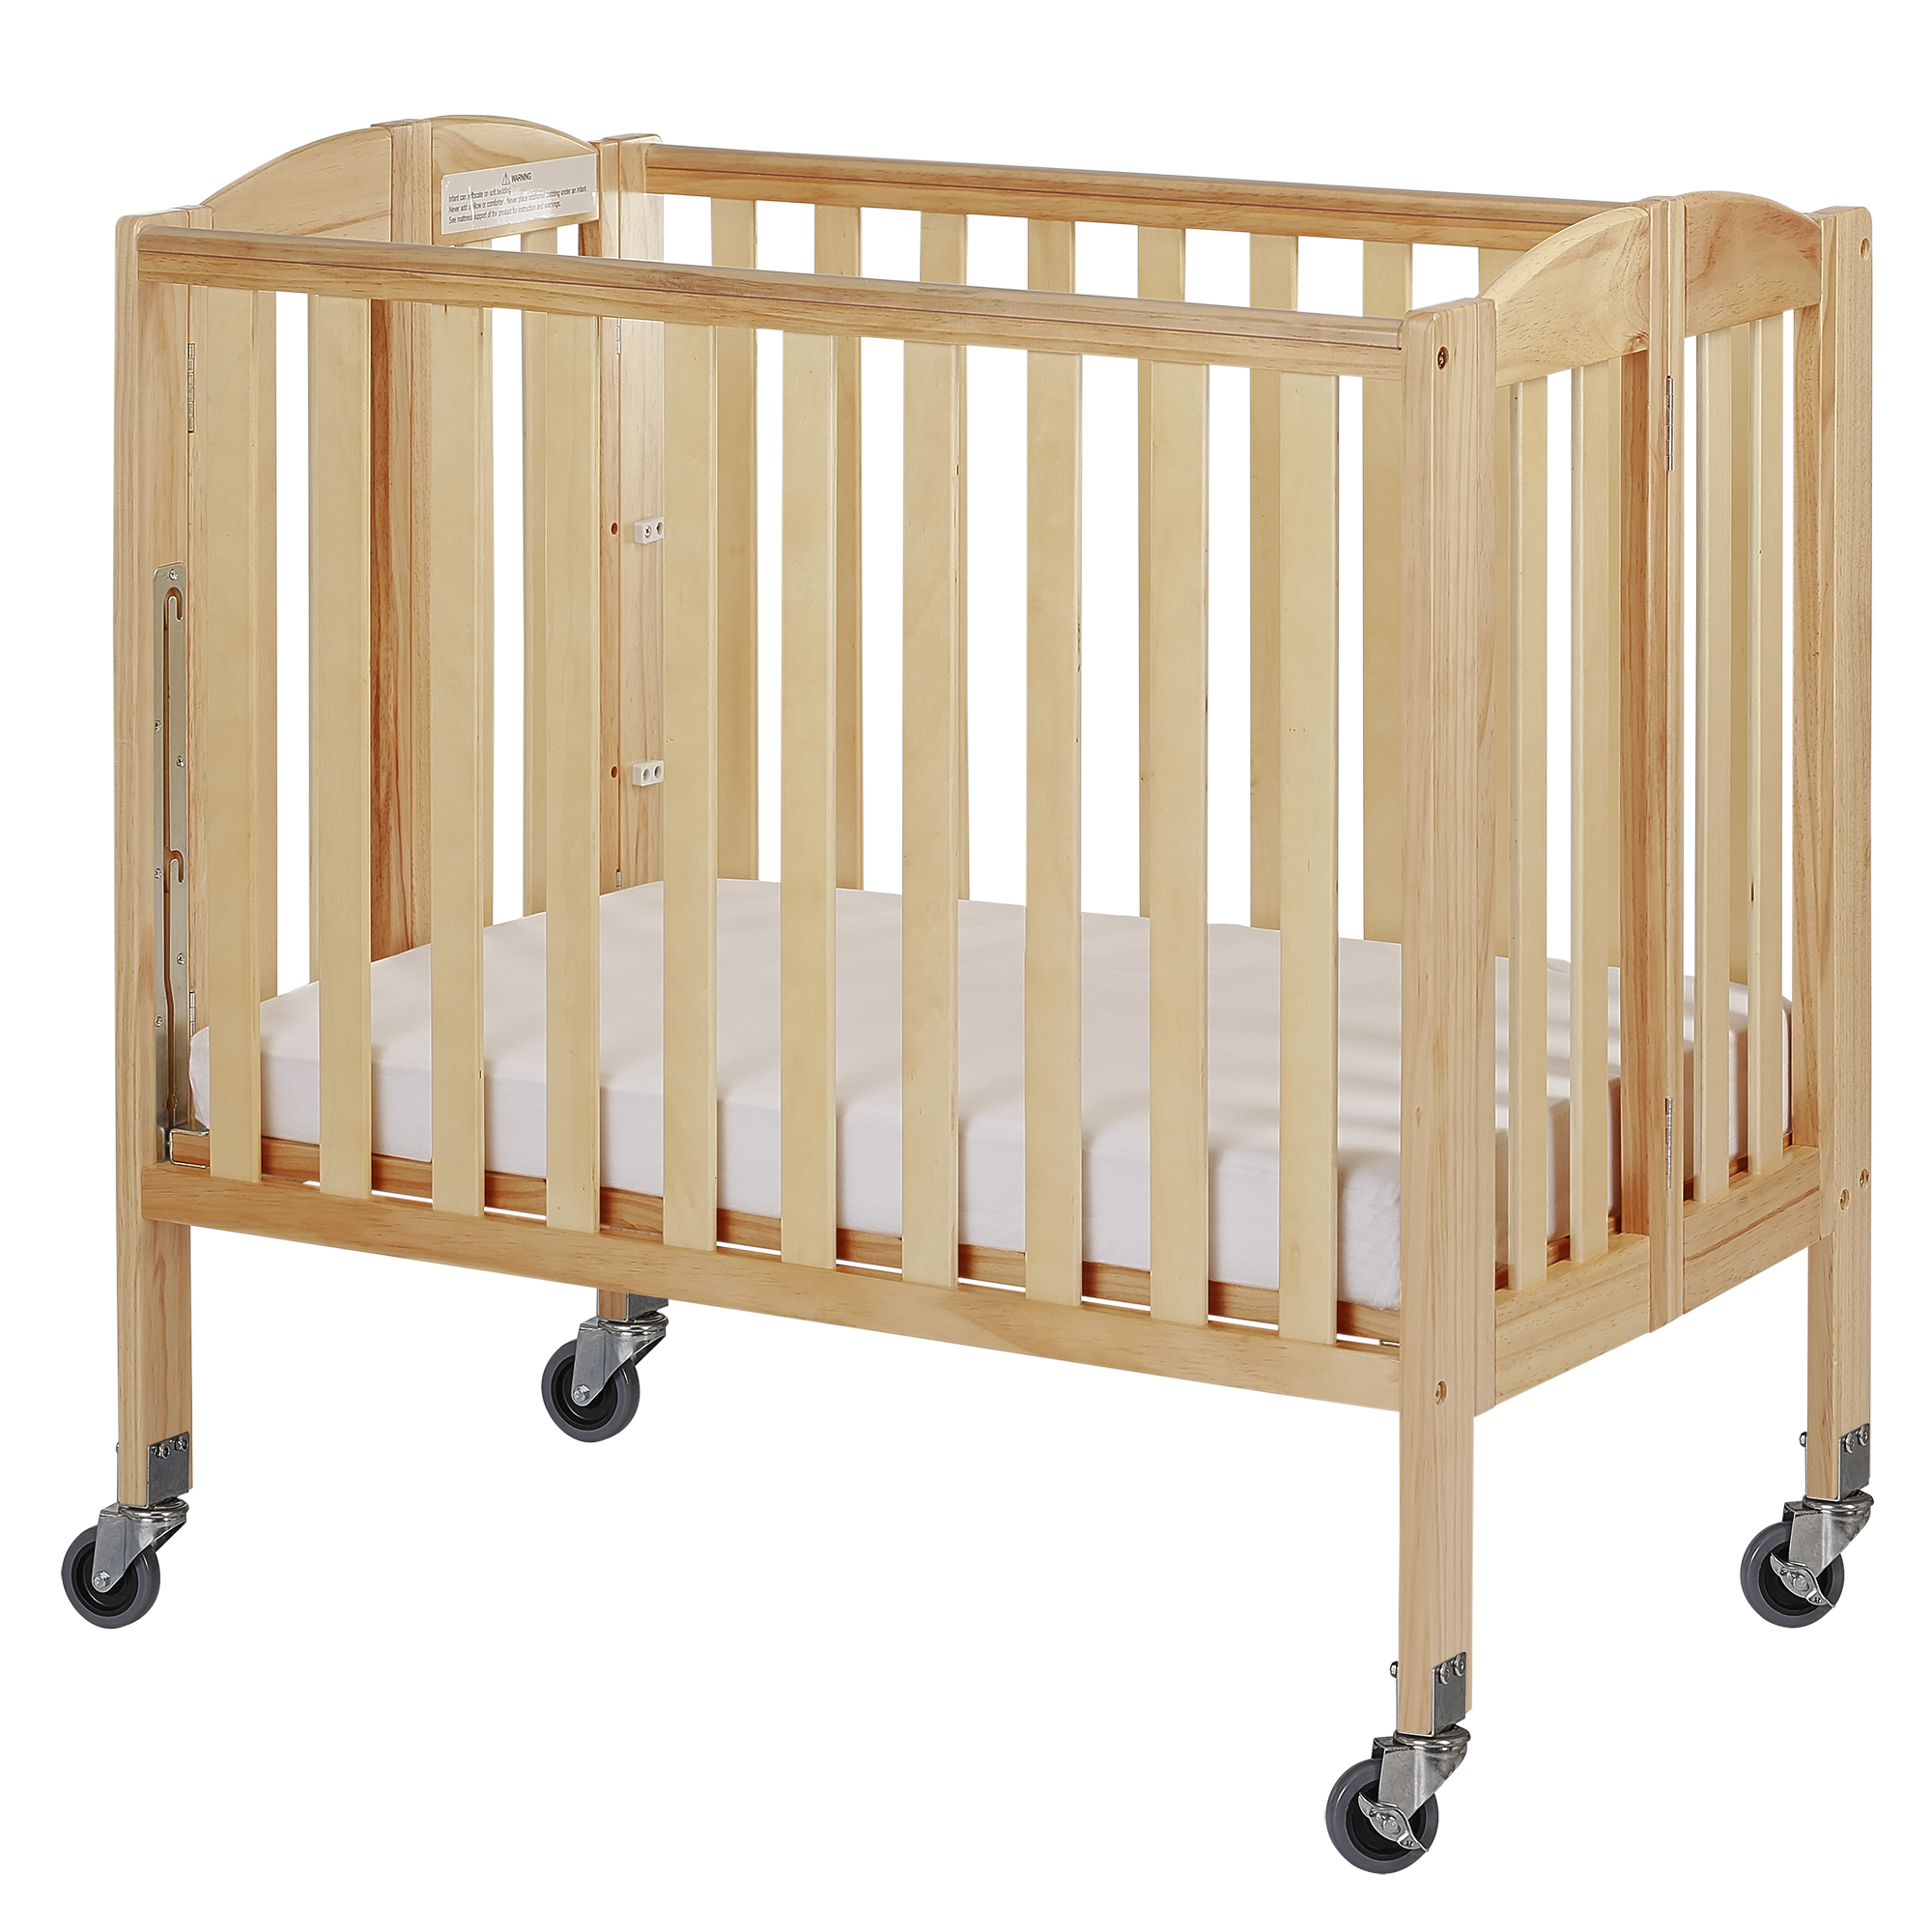 Dream On Me, 3 in 1 Birch Folding Portable Crib Storm Gray by Dream On Me